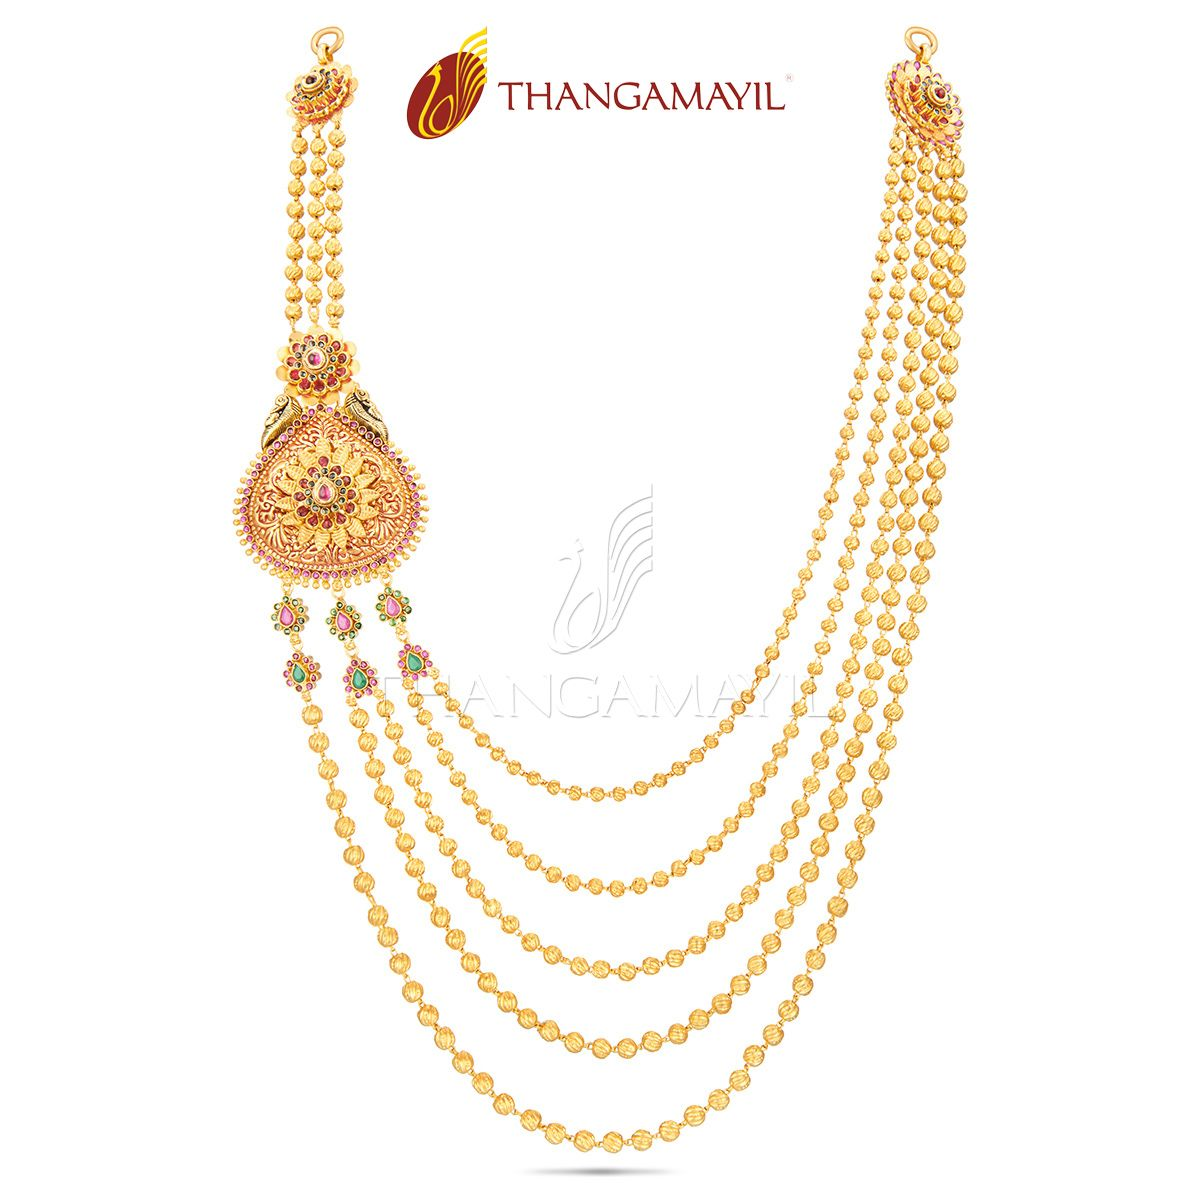 Pin by Thangamayil Jewellery on Sparkling Malai From Thangamayil ...